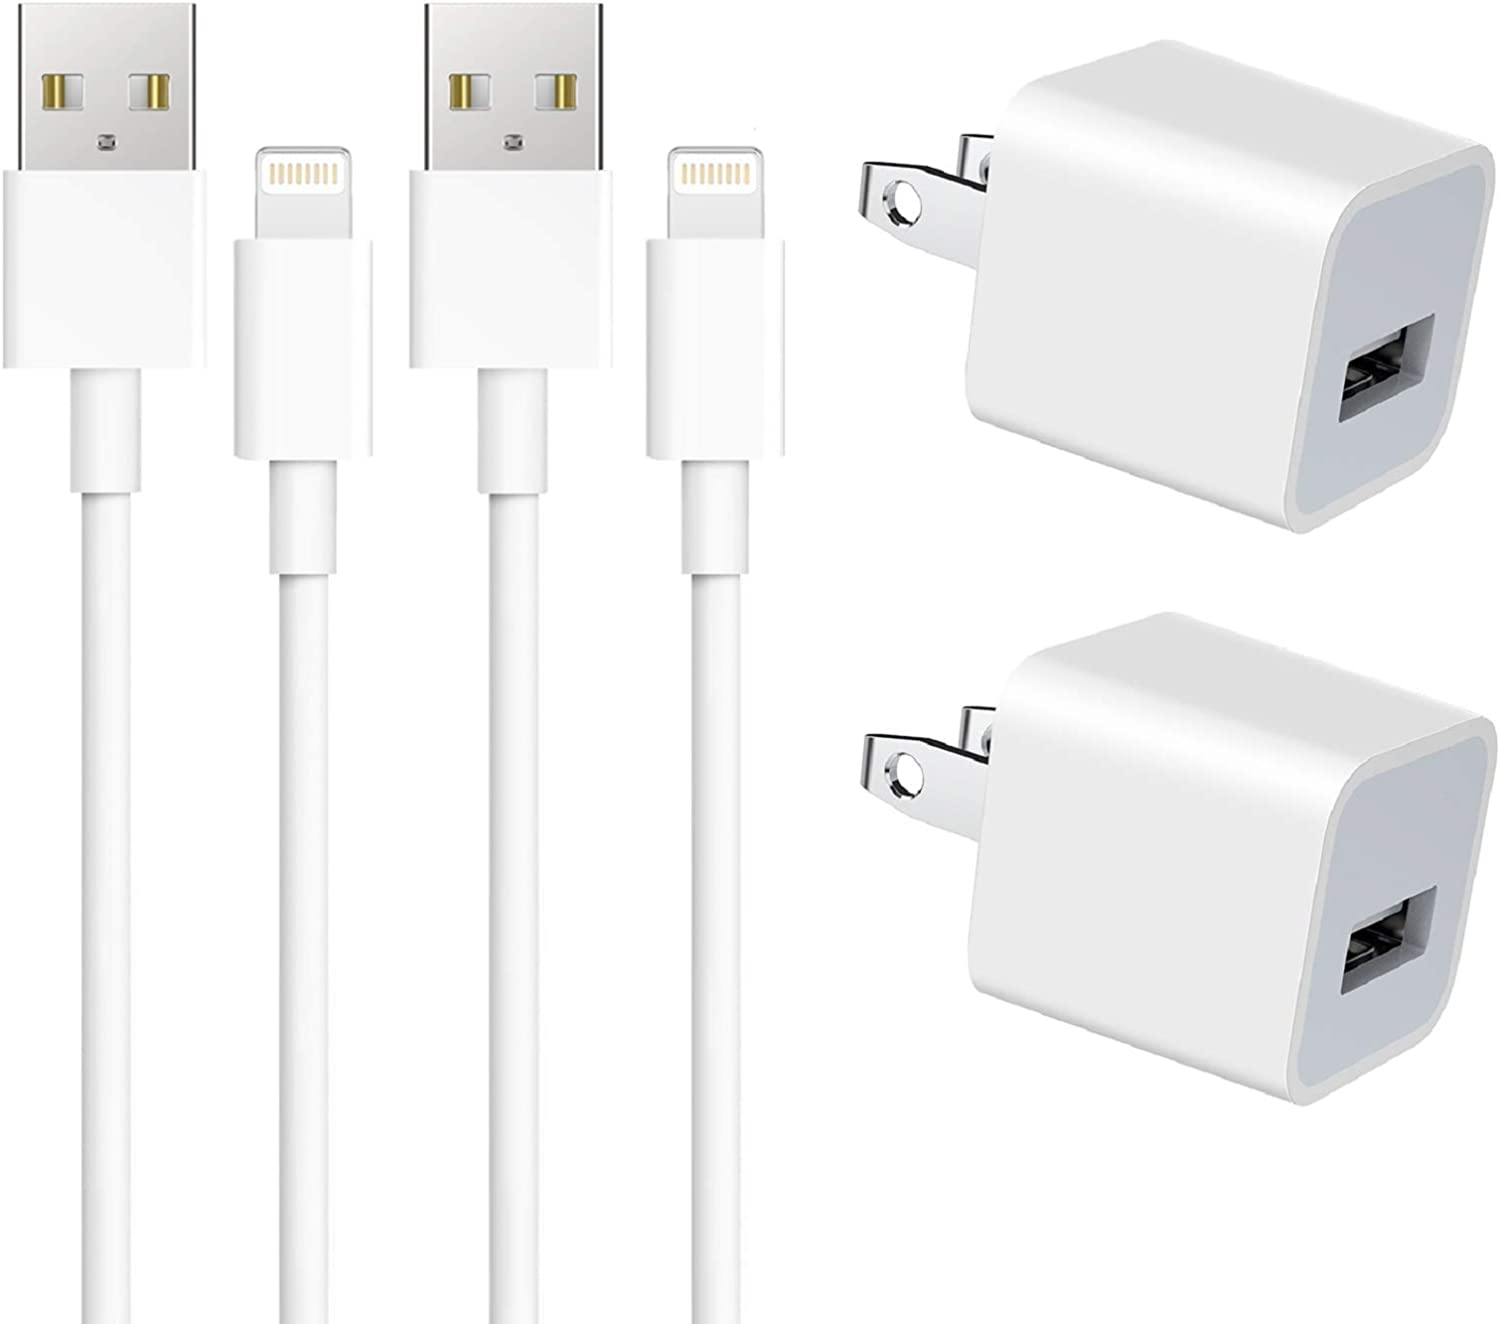 USB Wall Charger, 2 Pack Wall Charger Adapter Block with 2 Pack 3FT Charger Cable Cord Compatible iPhone 12/11/Xs/Xs Max/XR/X /8/7/6/6S Plus SE/5S/5C, iPad and More